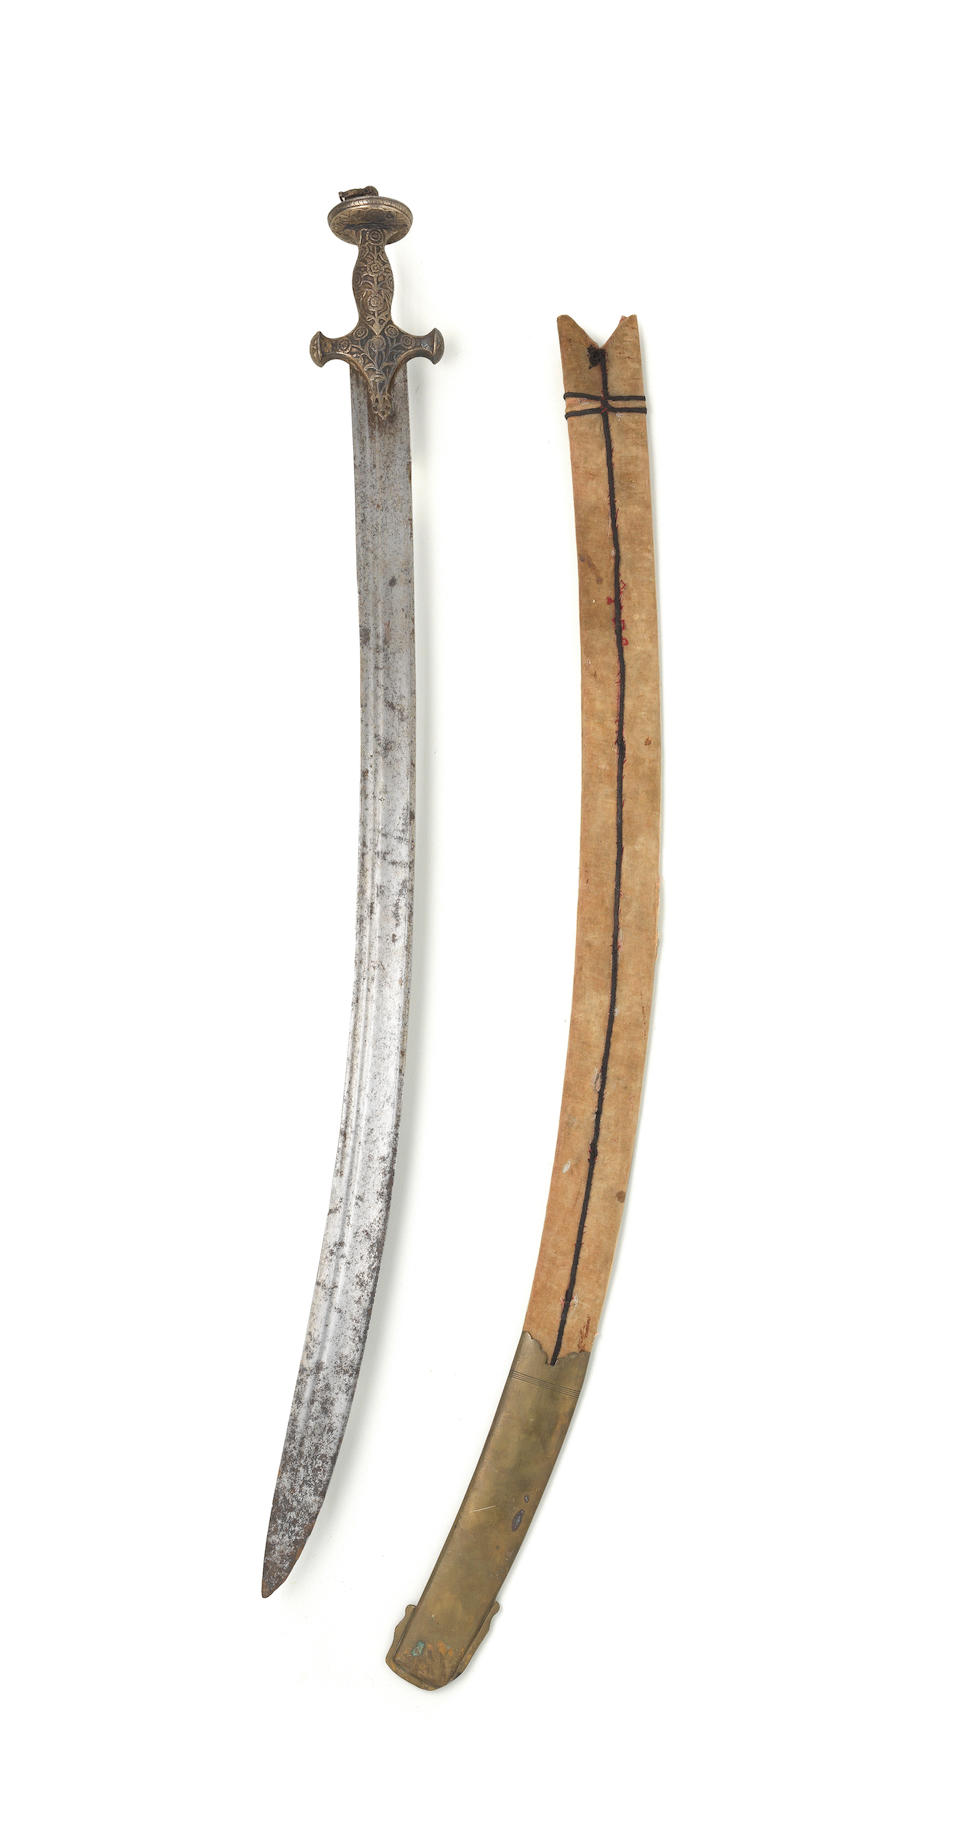 Two steel swords (tulwars) North India, 18th/ 19th Century(2)